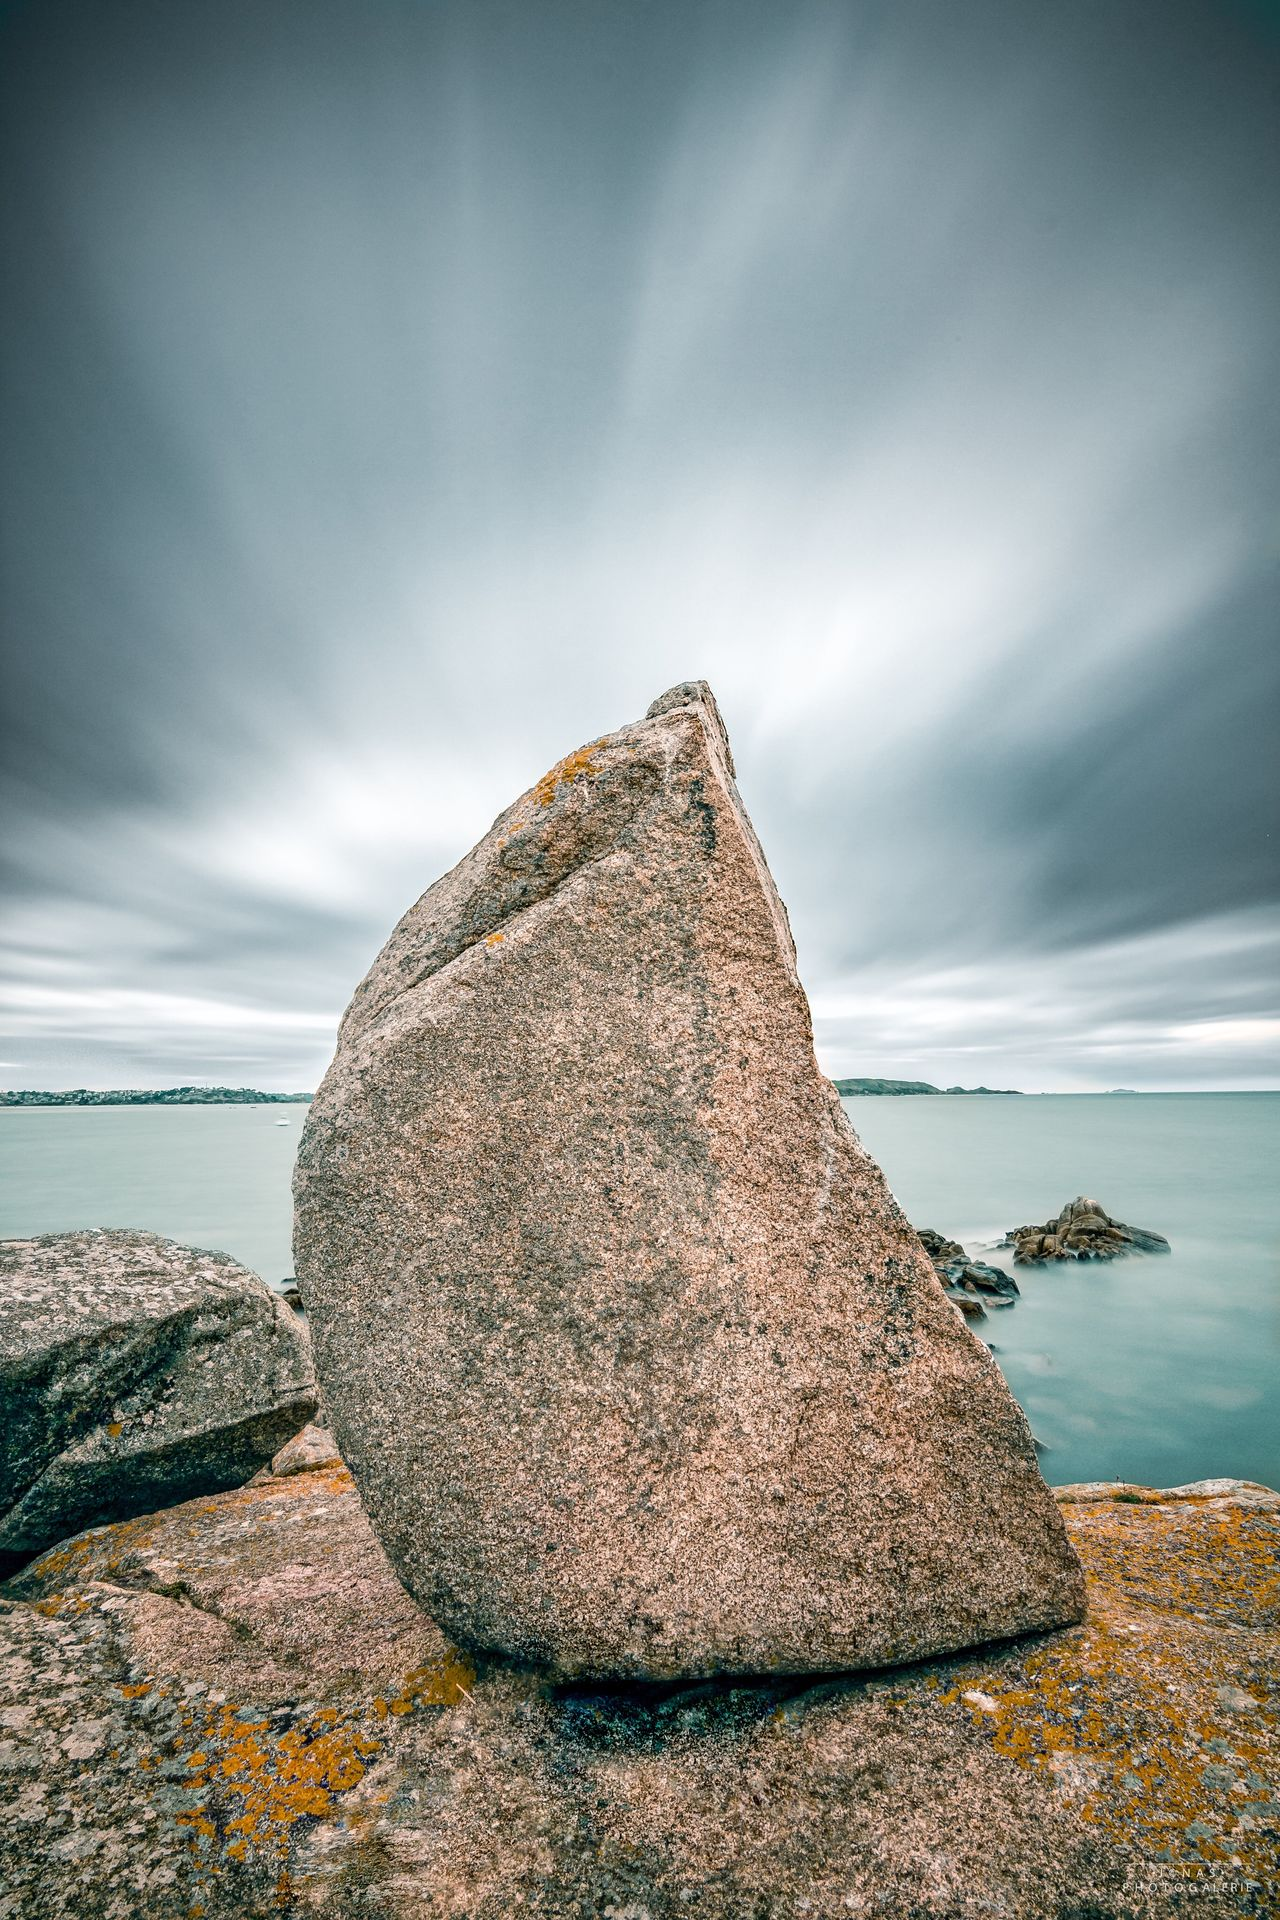 Menhir Rock - Object Sea Nature Horizon Over Water Tranquility Sky Scenics Tranquil Scene Beauty In Nature Day Water Outdoors Cloud - Sky No People Bretagne Beach Bretagnetourisme Bretagne My Love